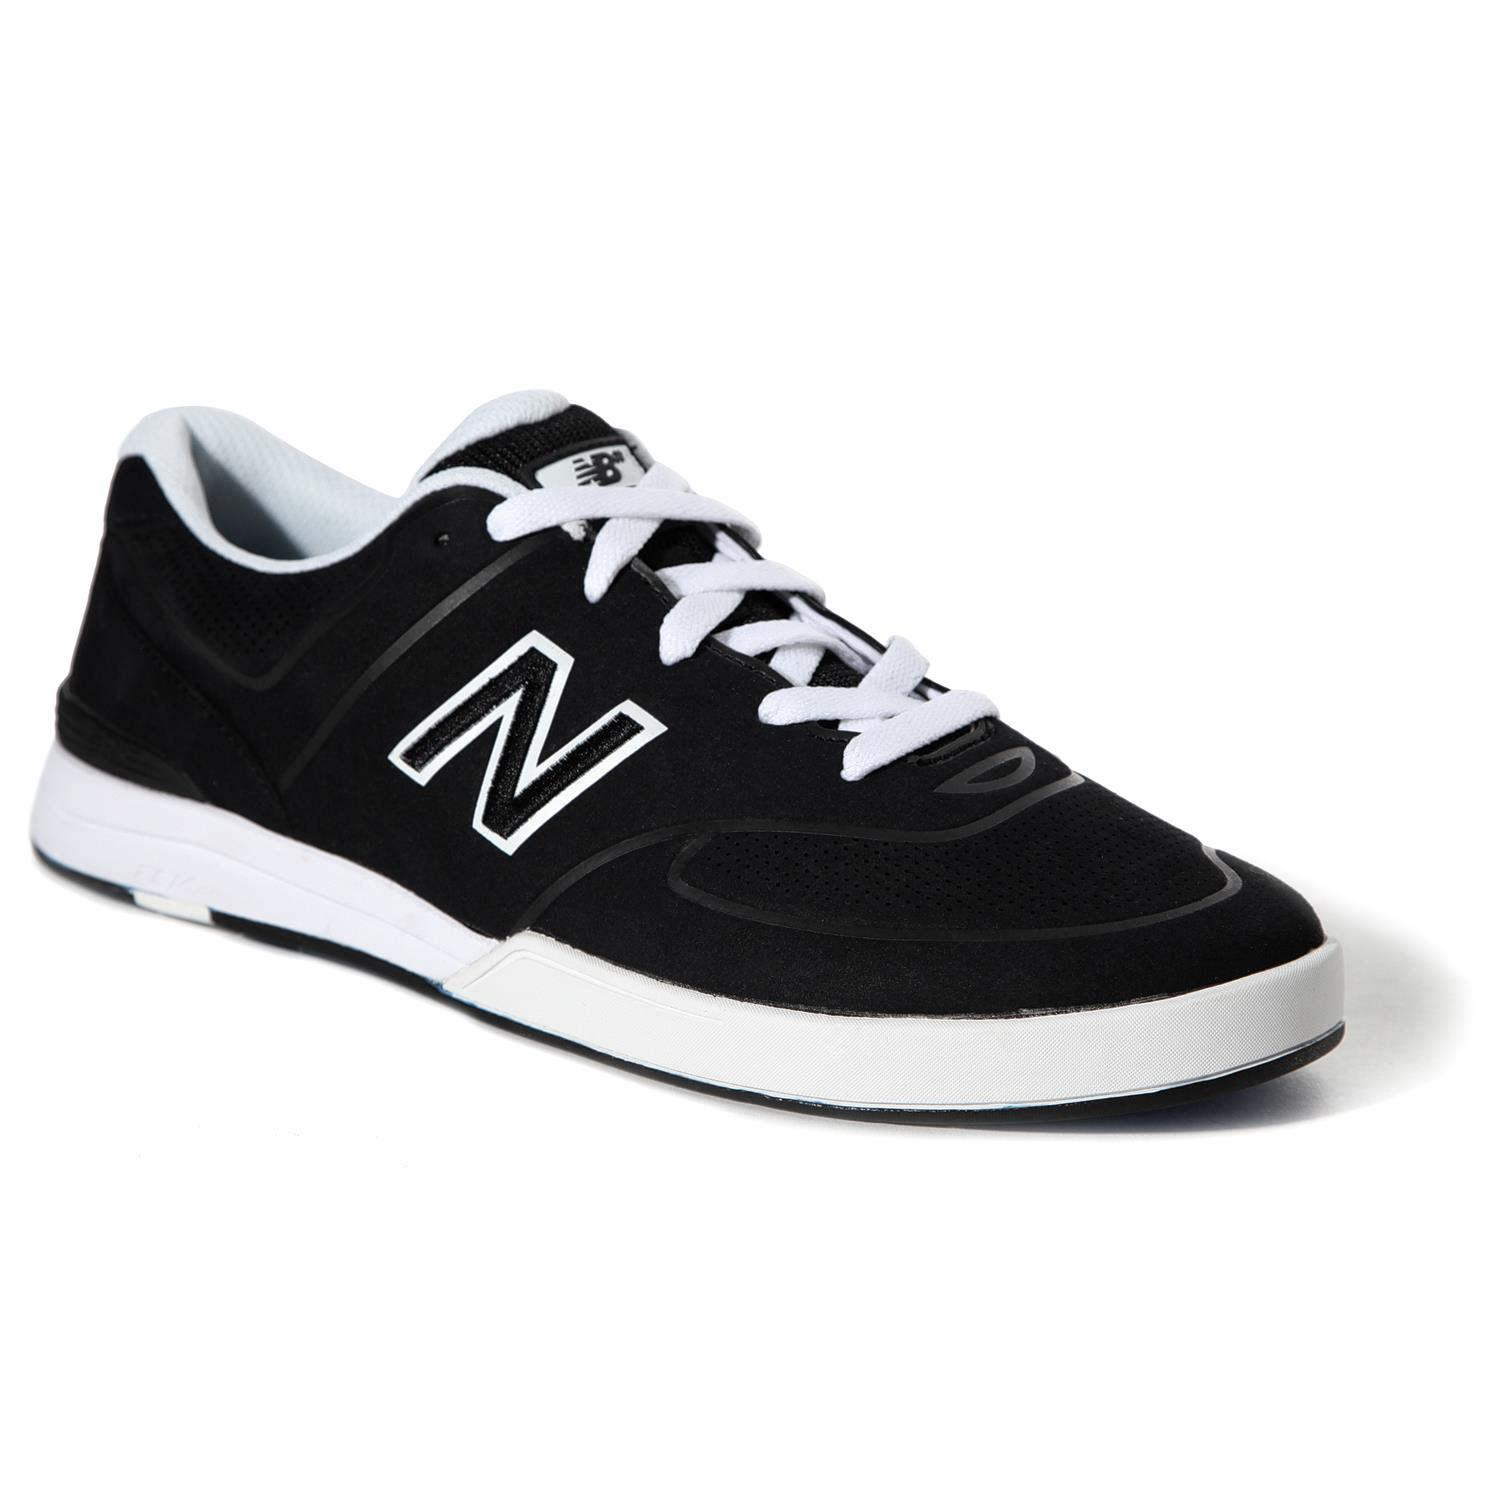 72567 condition new out of stock shop all new balance sale new balance